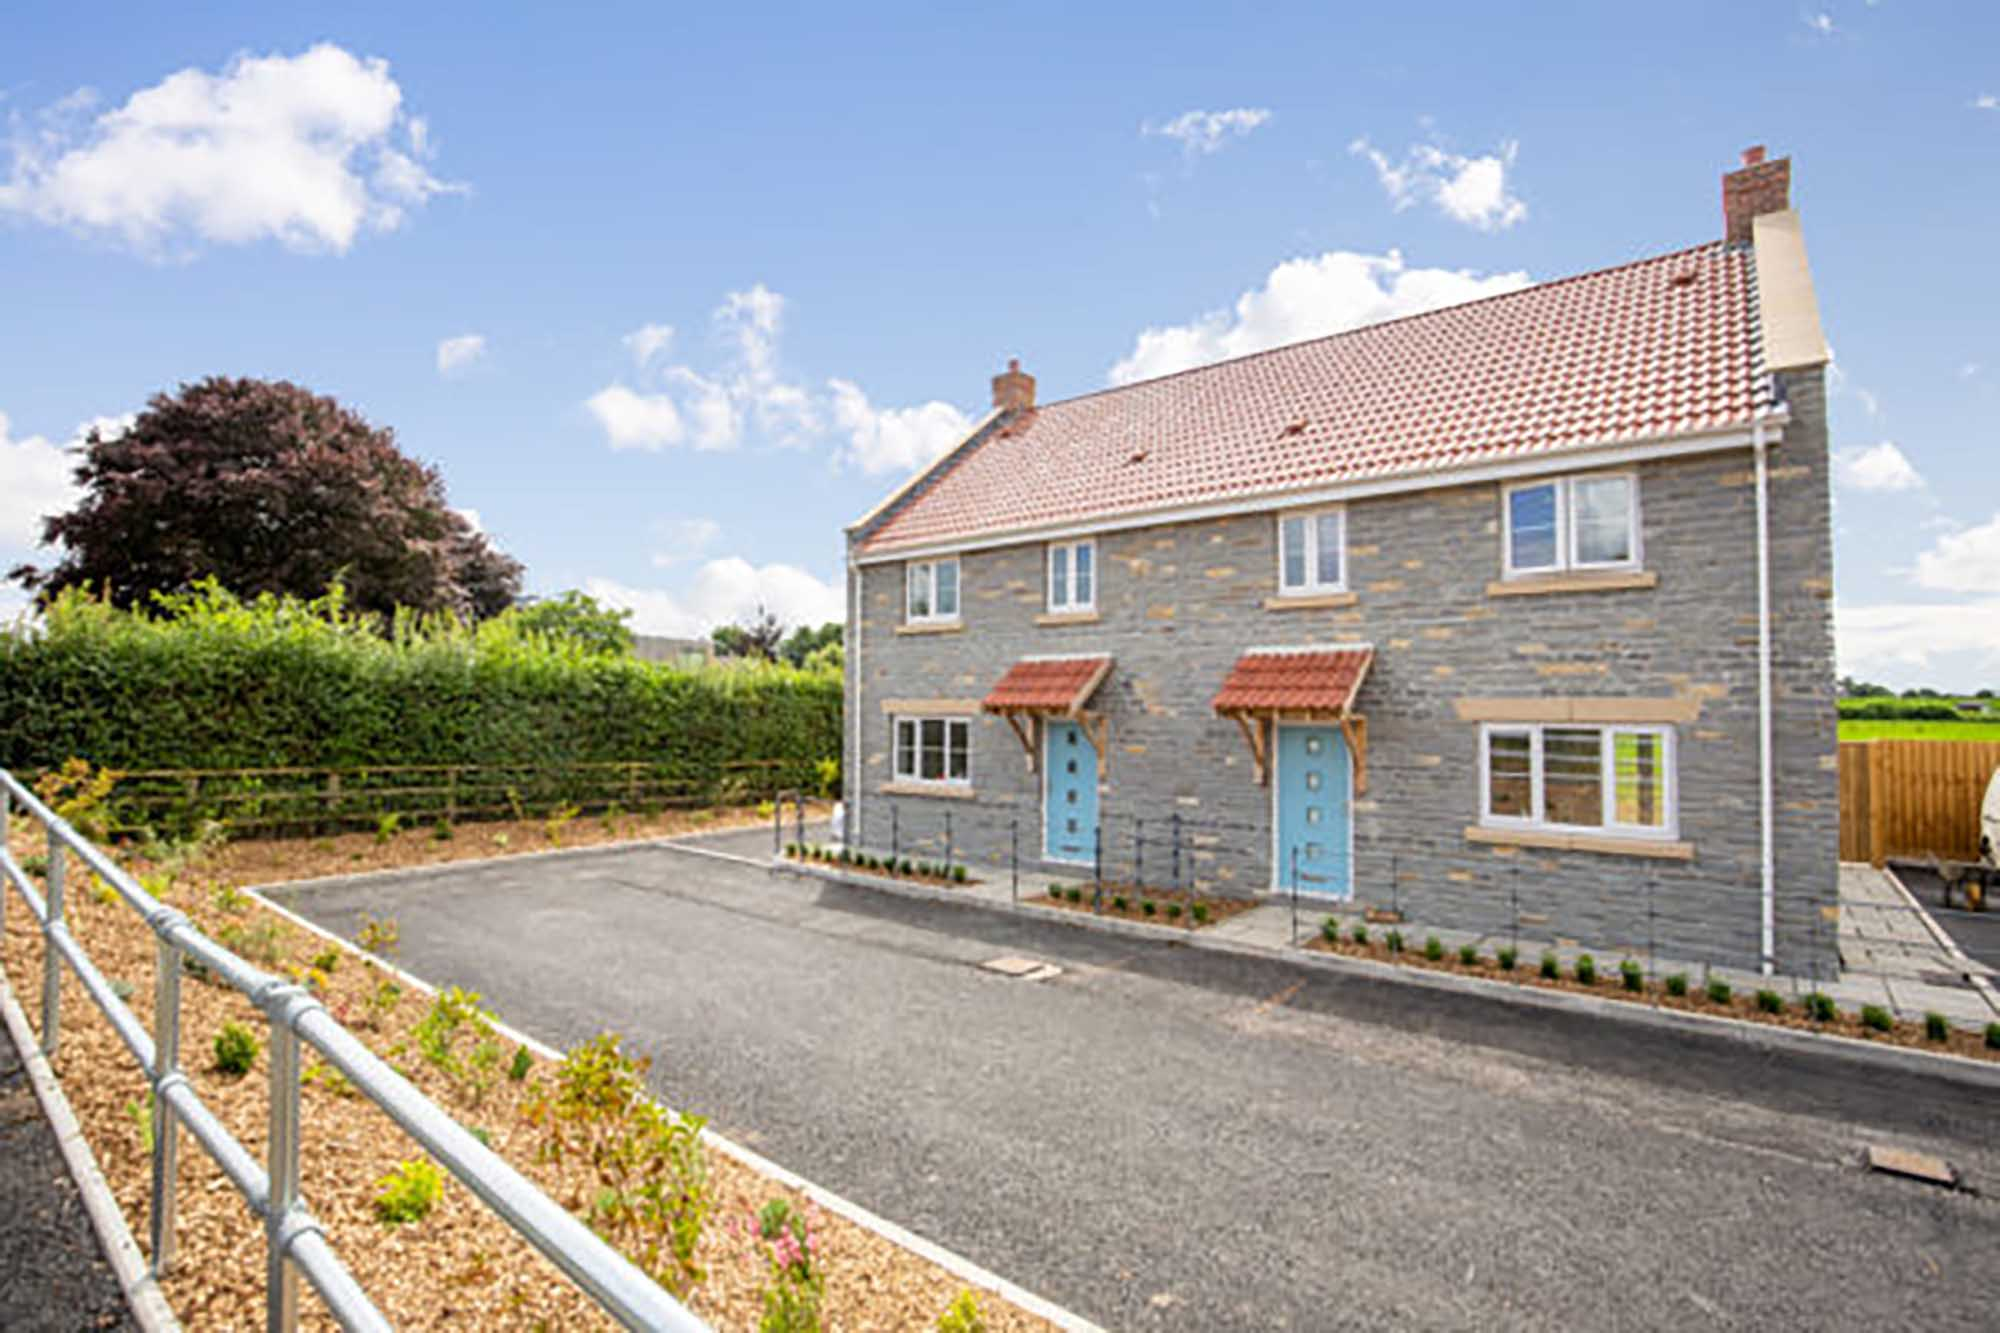 Newly built three bedroom semi detached houses in popular village